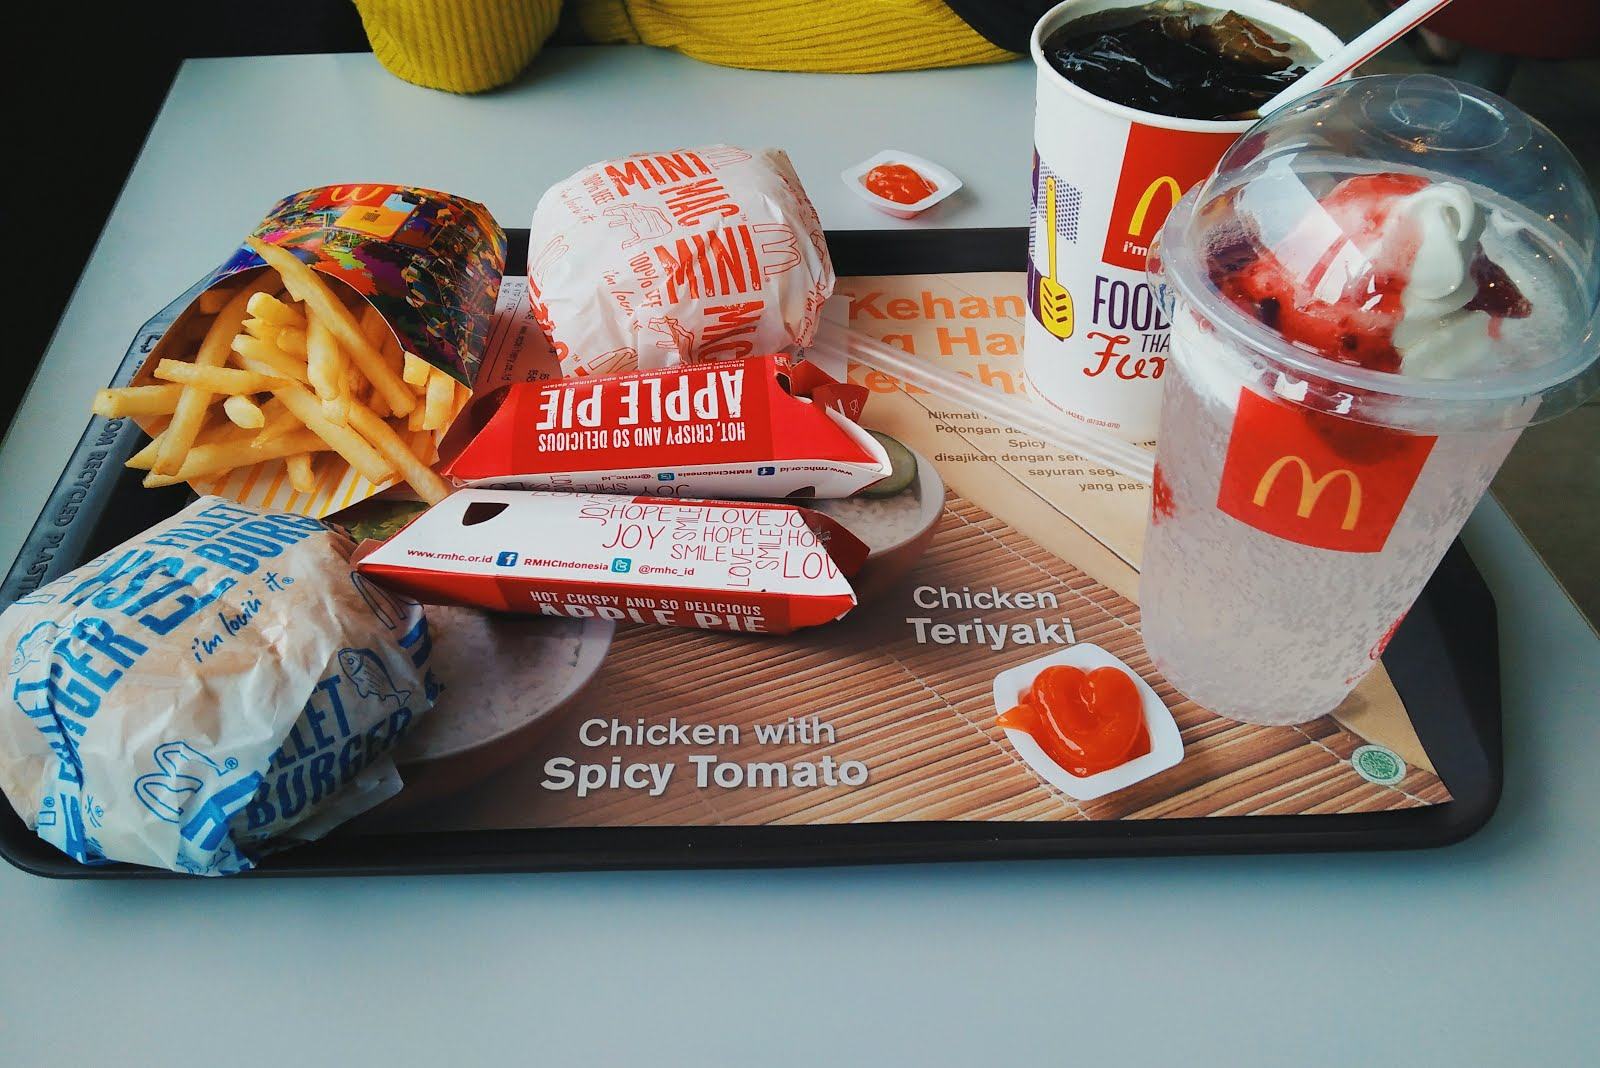 Apple Pie Mcdonald's Indonesia - The Menu